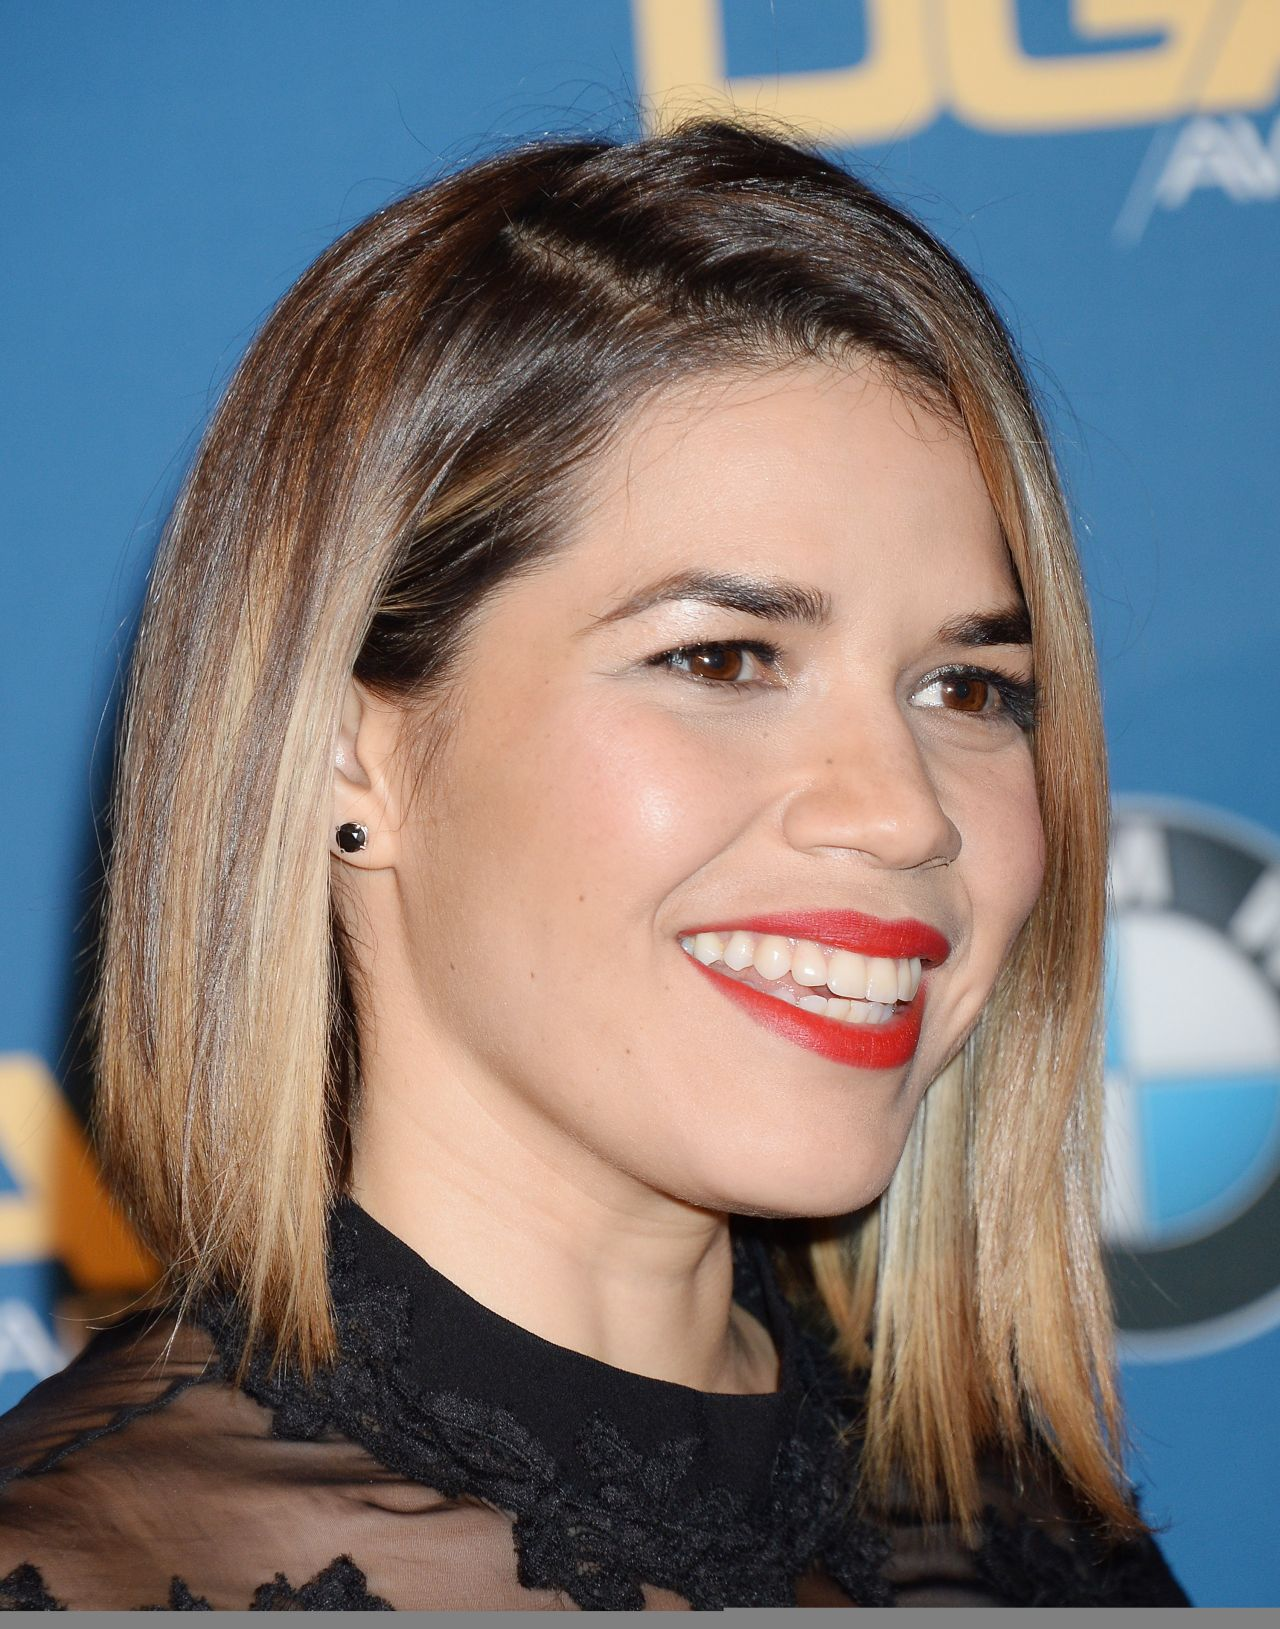 List of awards and nominations received by Lana Del Rey moreover America Ferrera Directors Guild Awards Los Angeles 24 2017 682018 also Rosamund Pike likewise 2018 Oscar Nominations The Shape Of Water Dunkirk News 846253719 also Saoirse Ronan Saoirseronan Oscars Nominees Luncheon 2018 Beverly Hills 328854. on golden globe nominations 2018 list